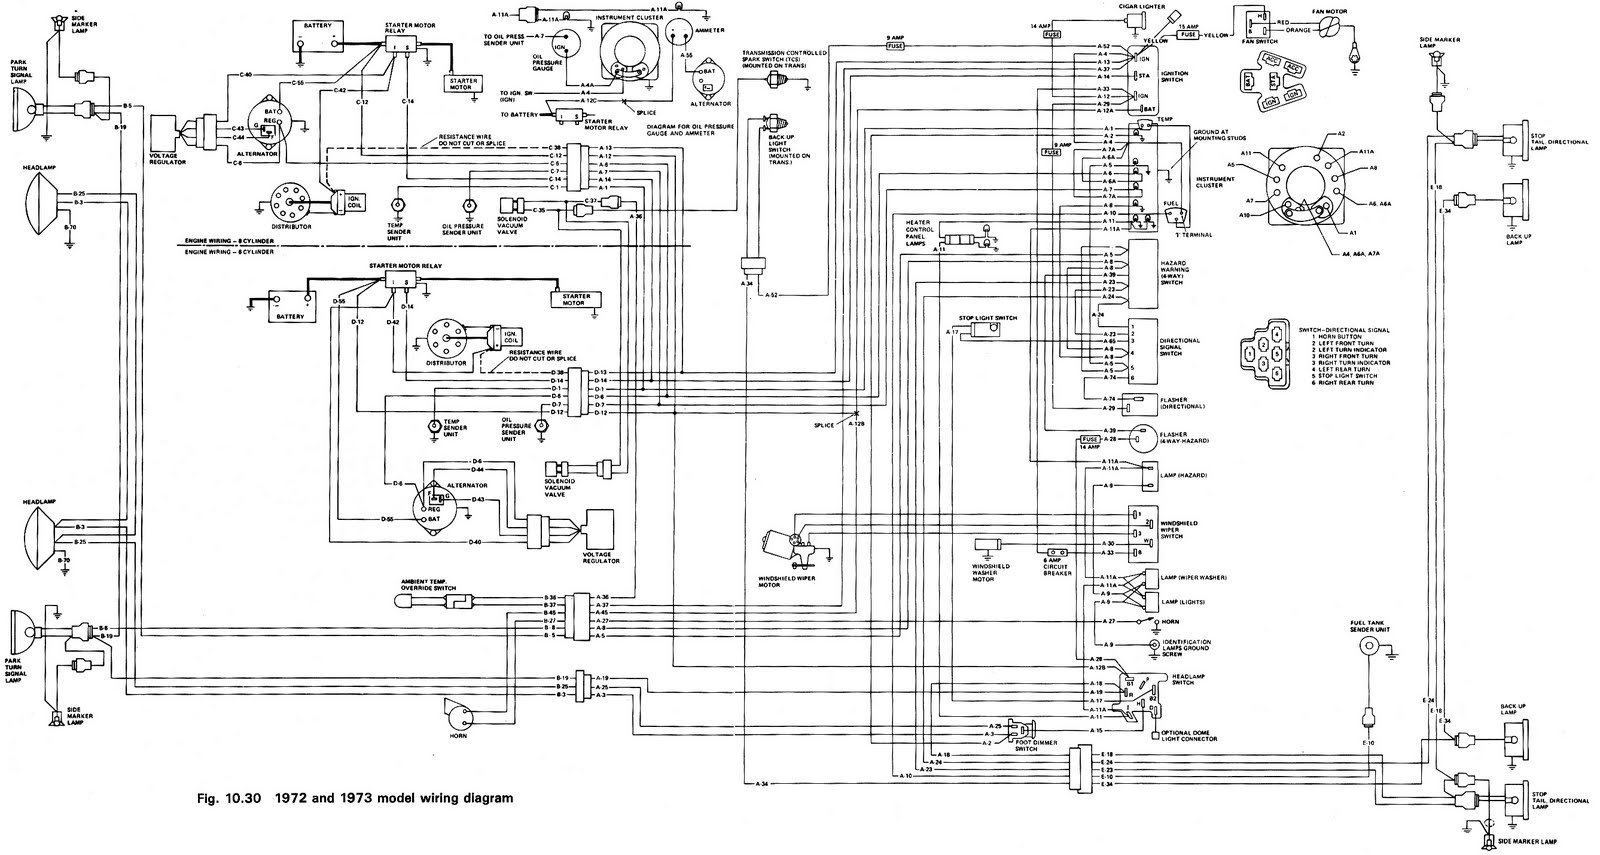 1970 Cj5 Wiring Diagram Cj 1976 1977jpg